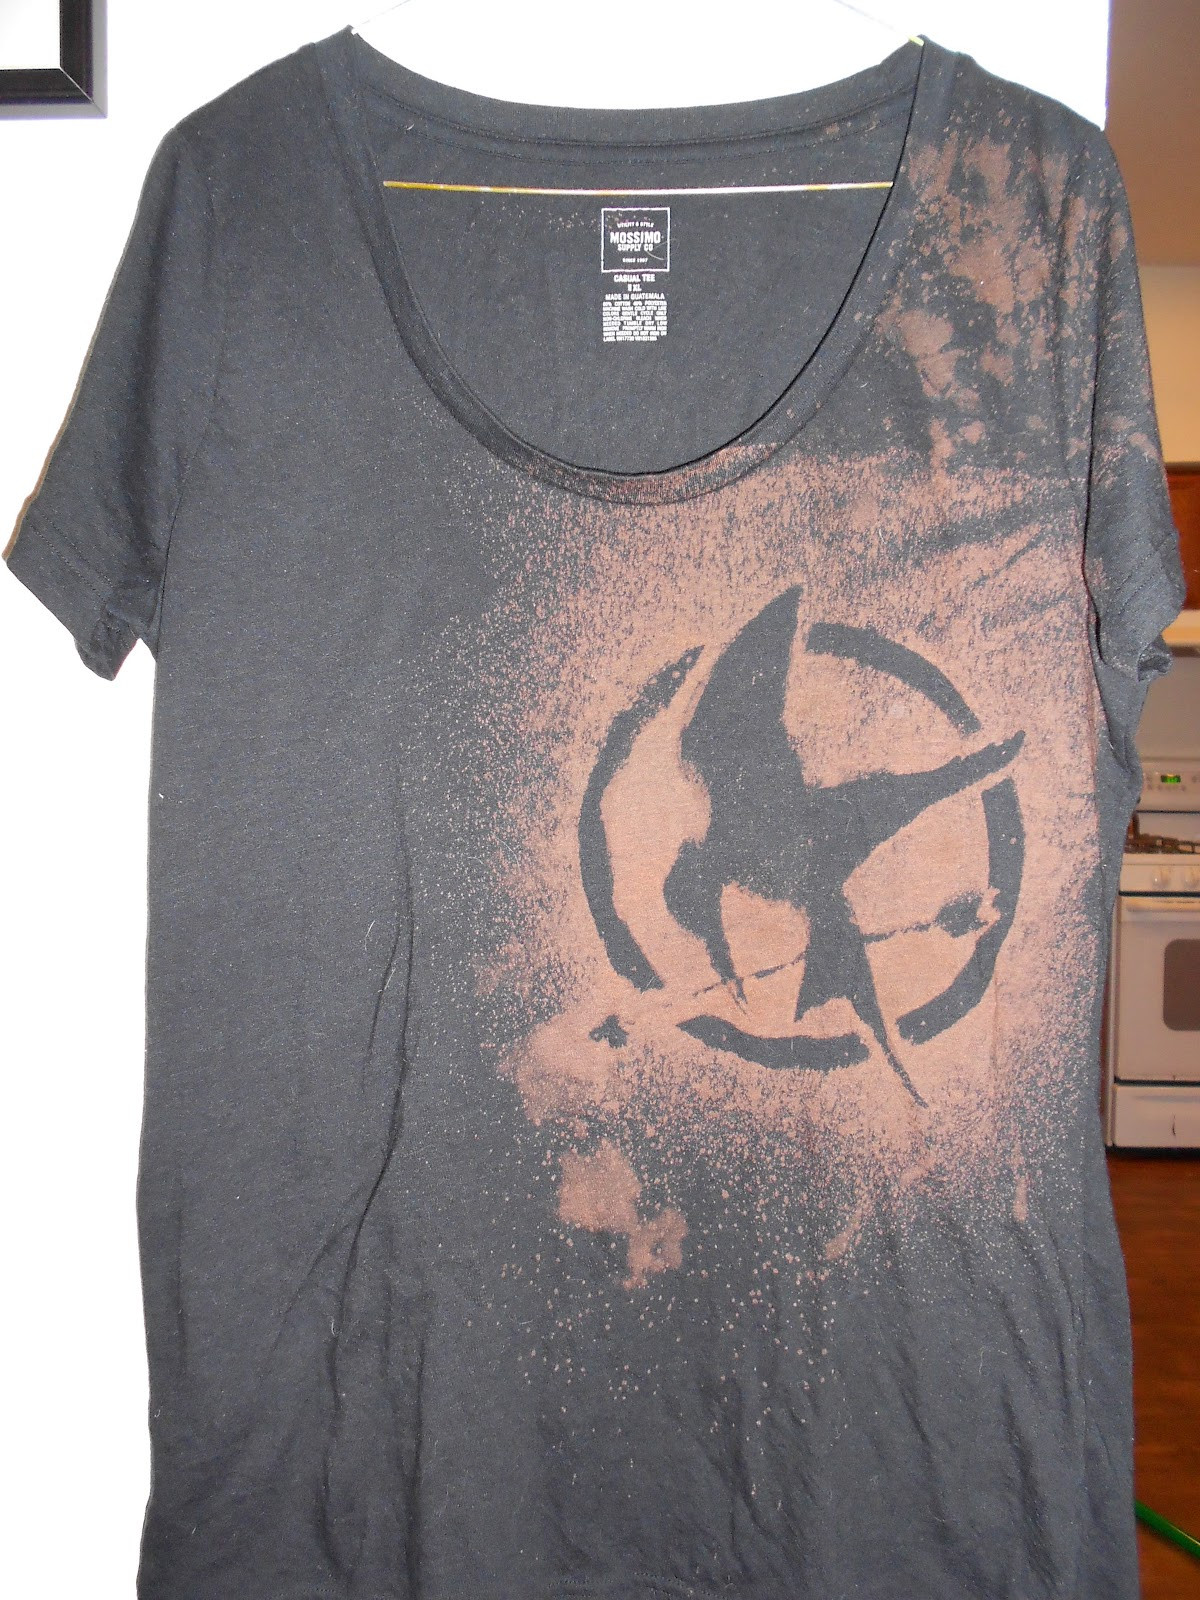 Best ideas about DIY Bleach Shirt . Save or Pin I Was p Inspired Kara s DIY Bleach Design T Shirt Now.